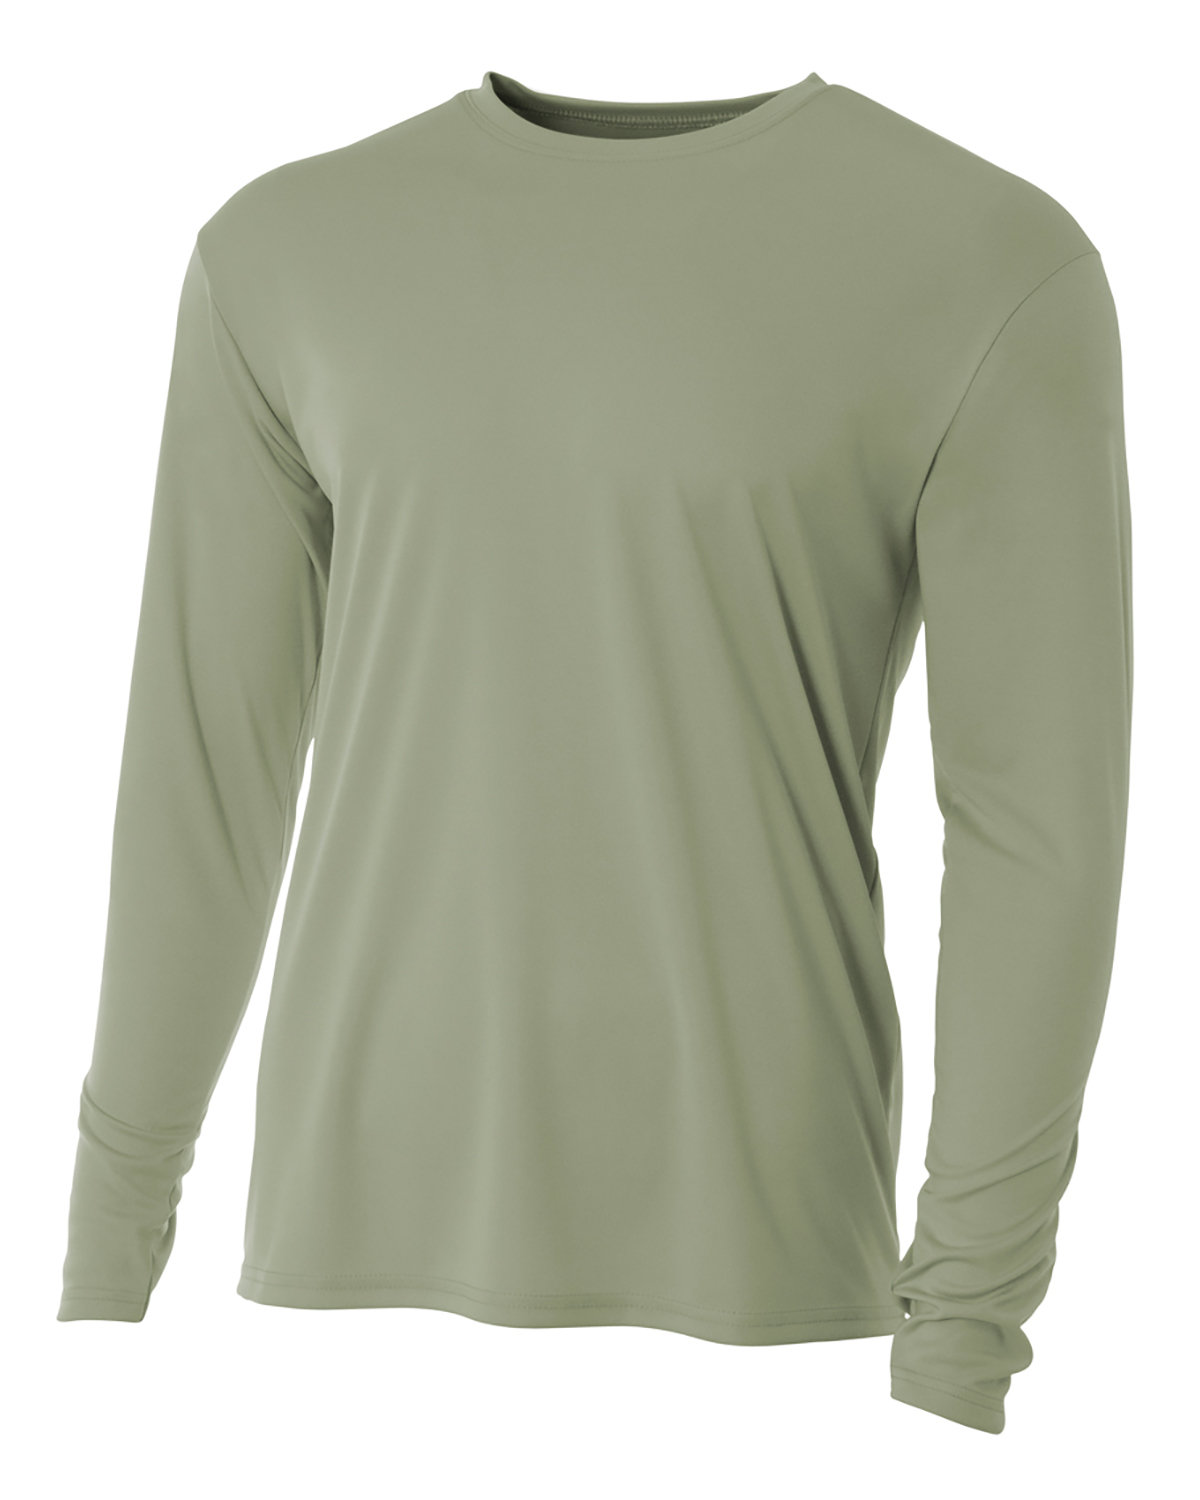 A4 Men's Cooling Performance Long Sleeve T-Shirt OLIVE